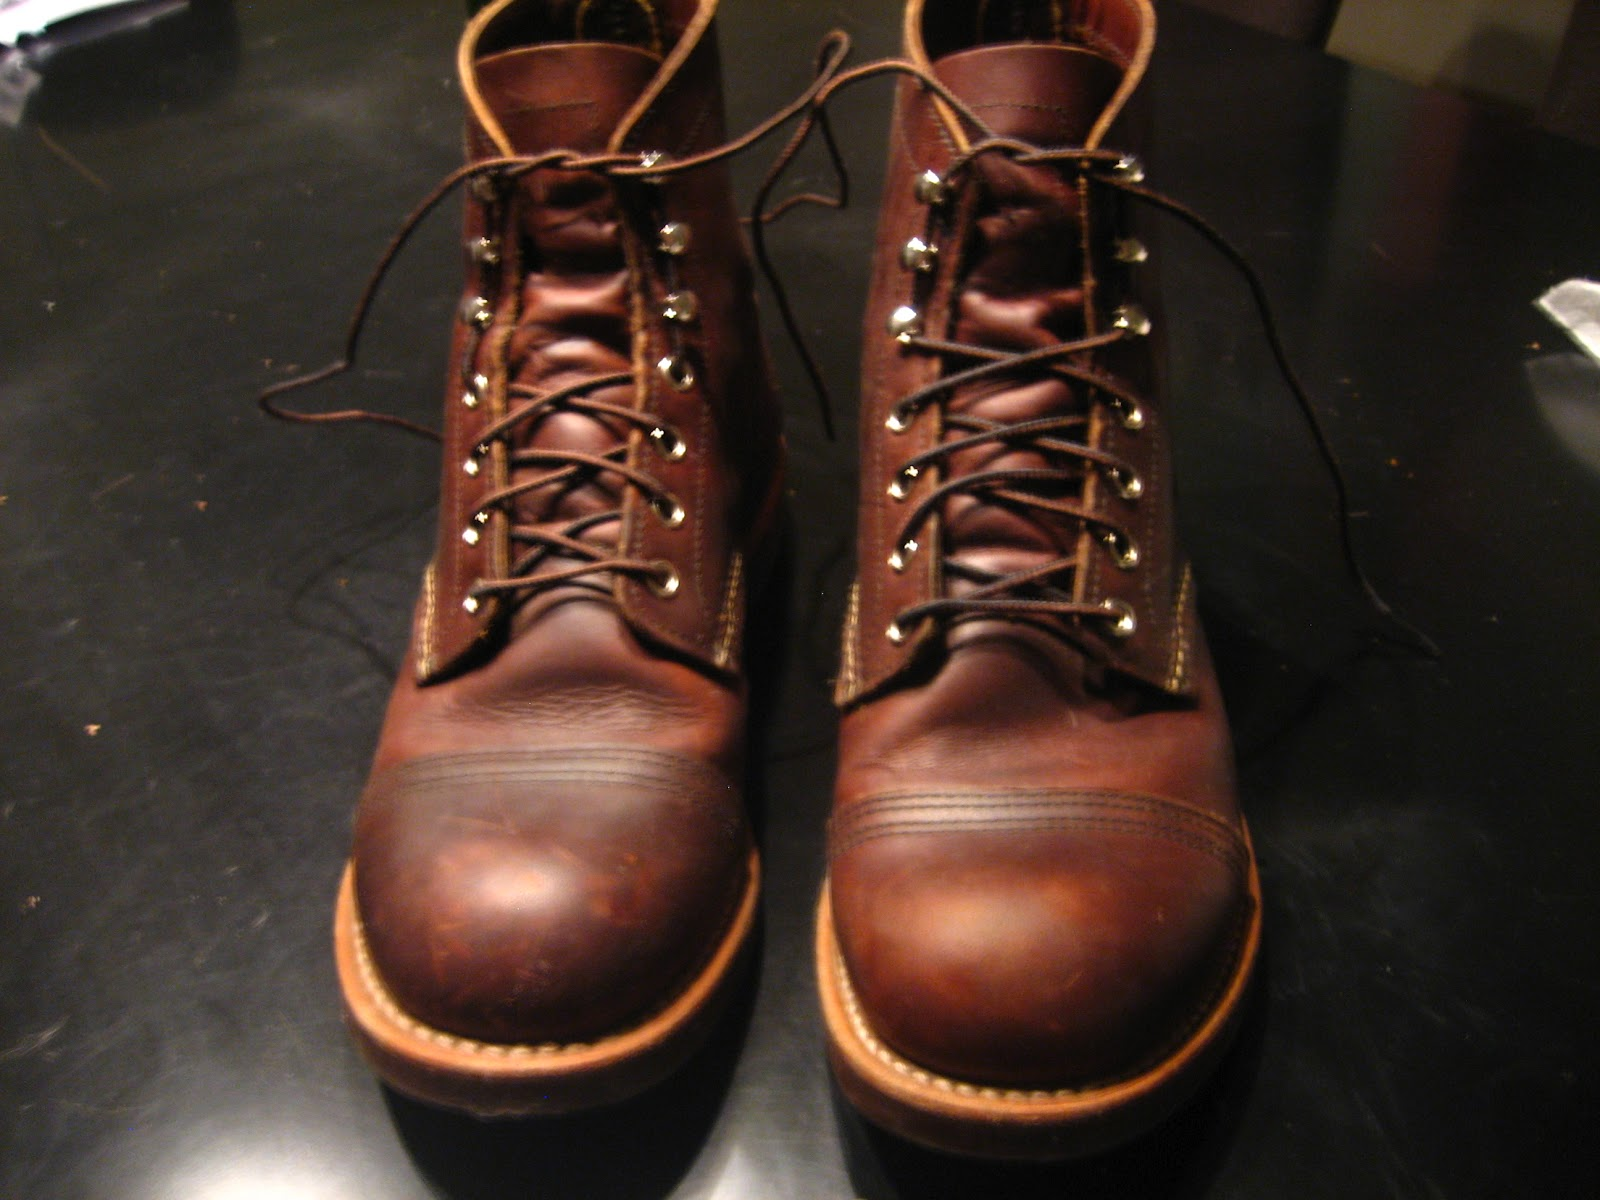 Week 1 And 2 Red Wing Iron Ranger Boot My Redwing Iron Ranger Boots